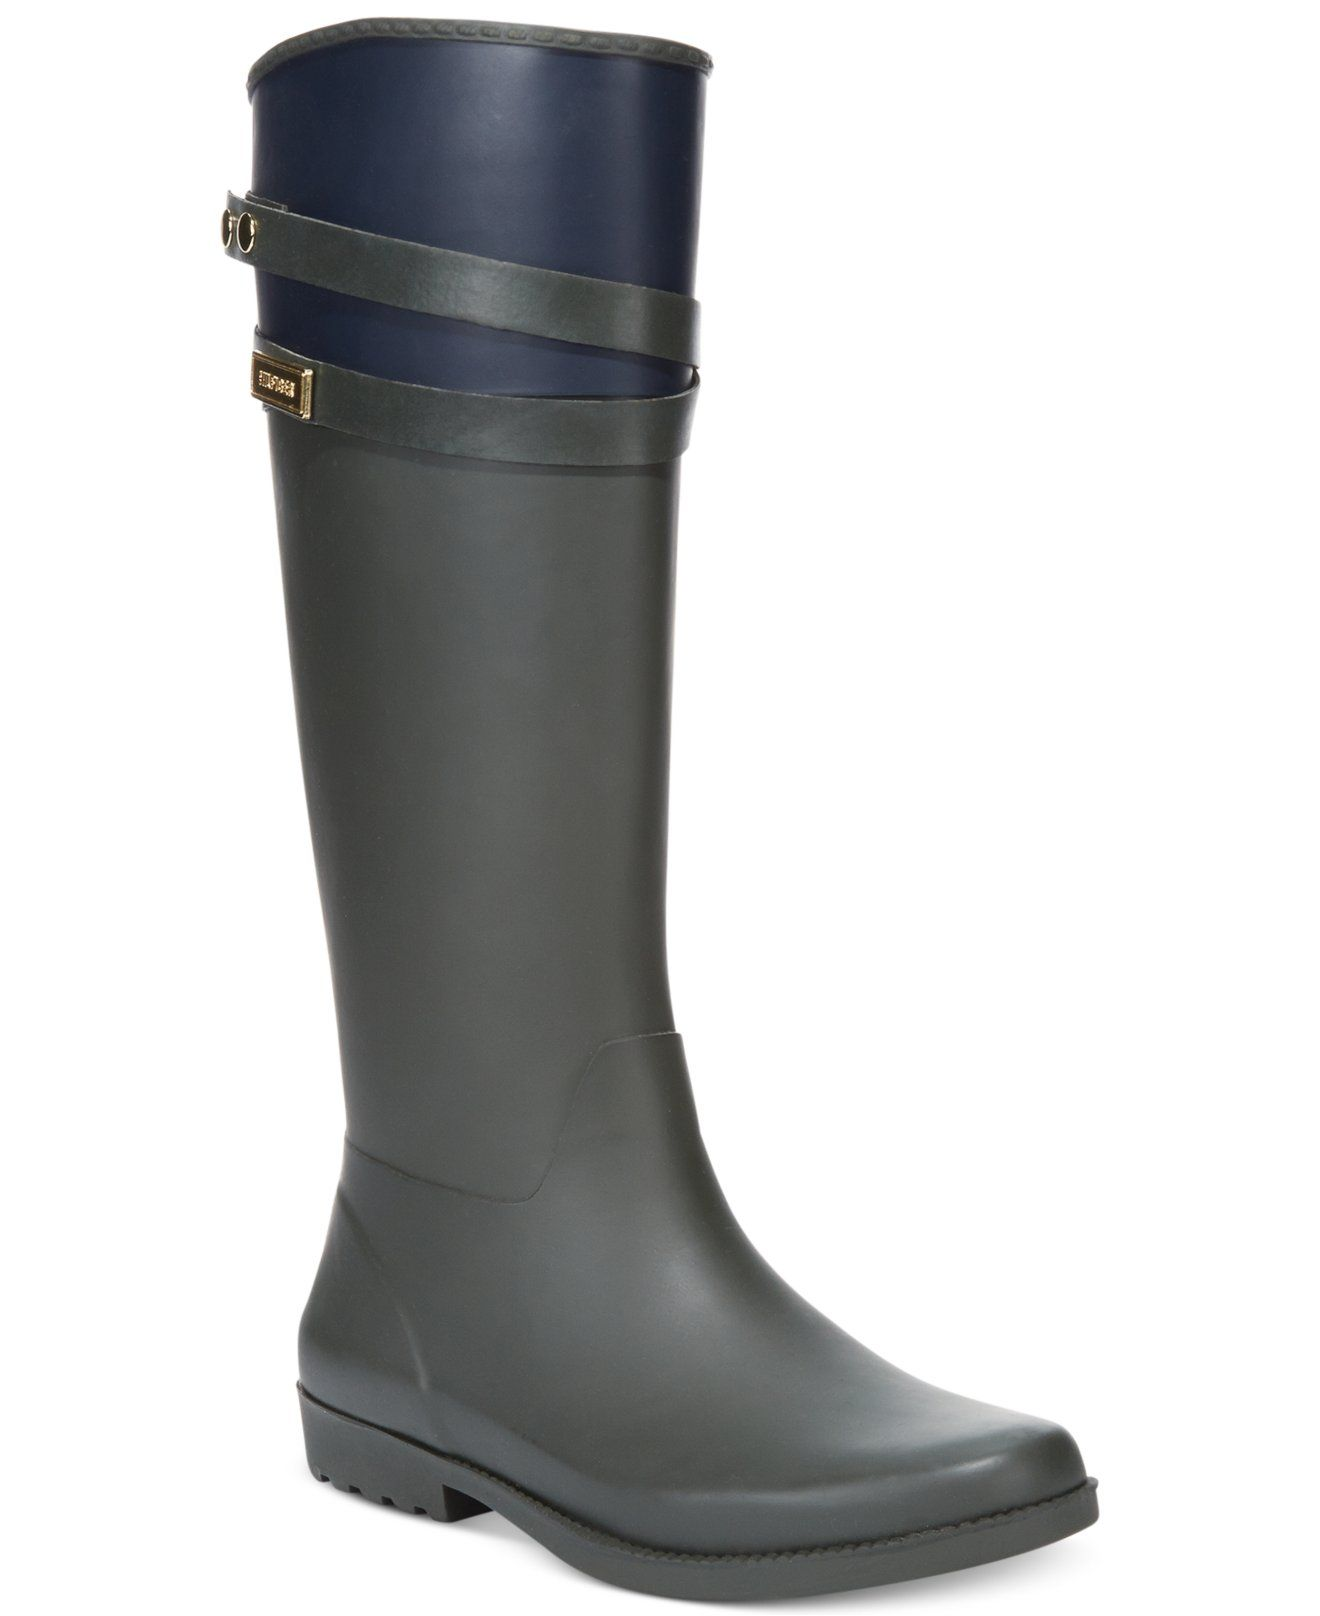 27498be0dc5de Tommy Hilfiger Women s Coree Tall Rain Boots - Shoes - Macy s  79 ...